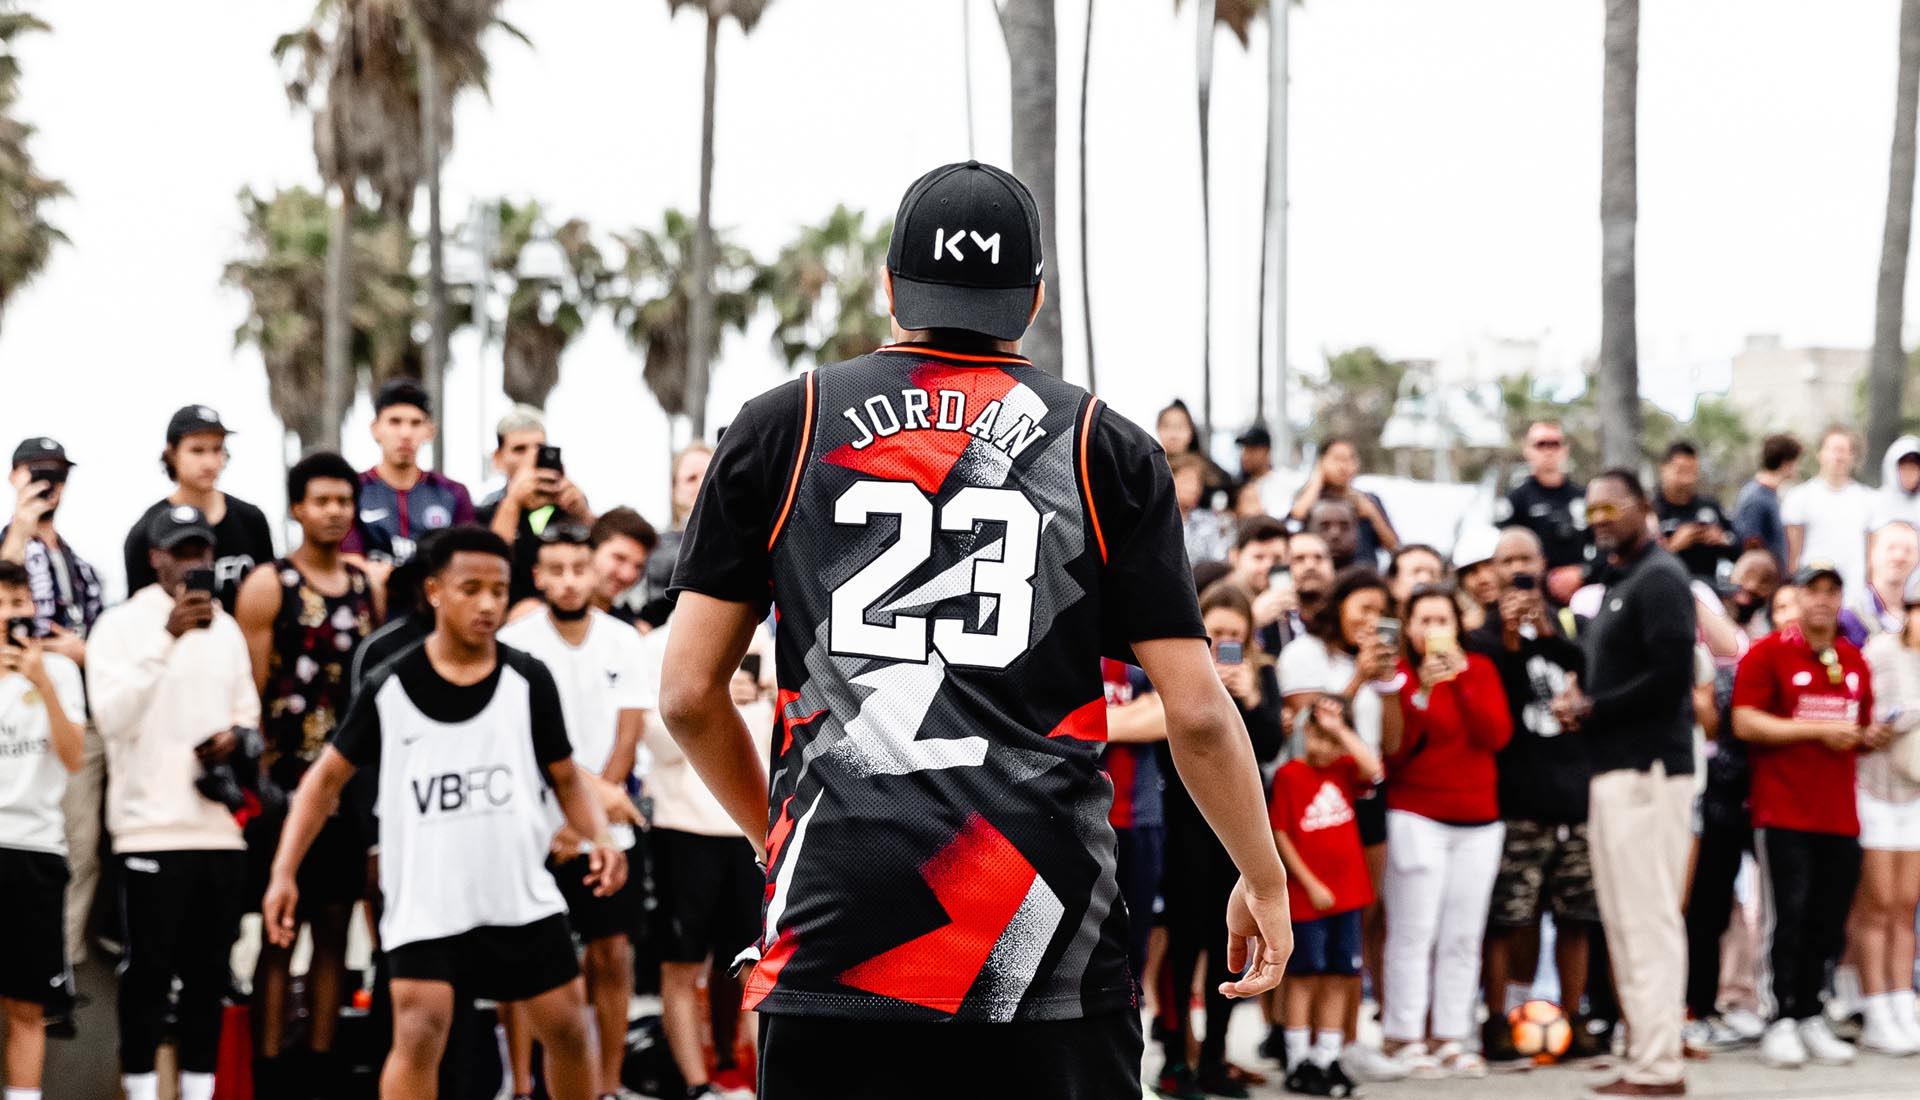 promo code b7585 9f8cb Kylian Mbappé Debuts PSG x Jordan Collection at Venice Beach ...